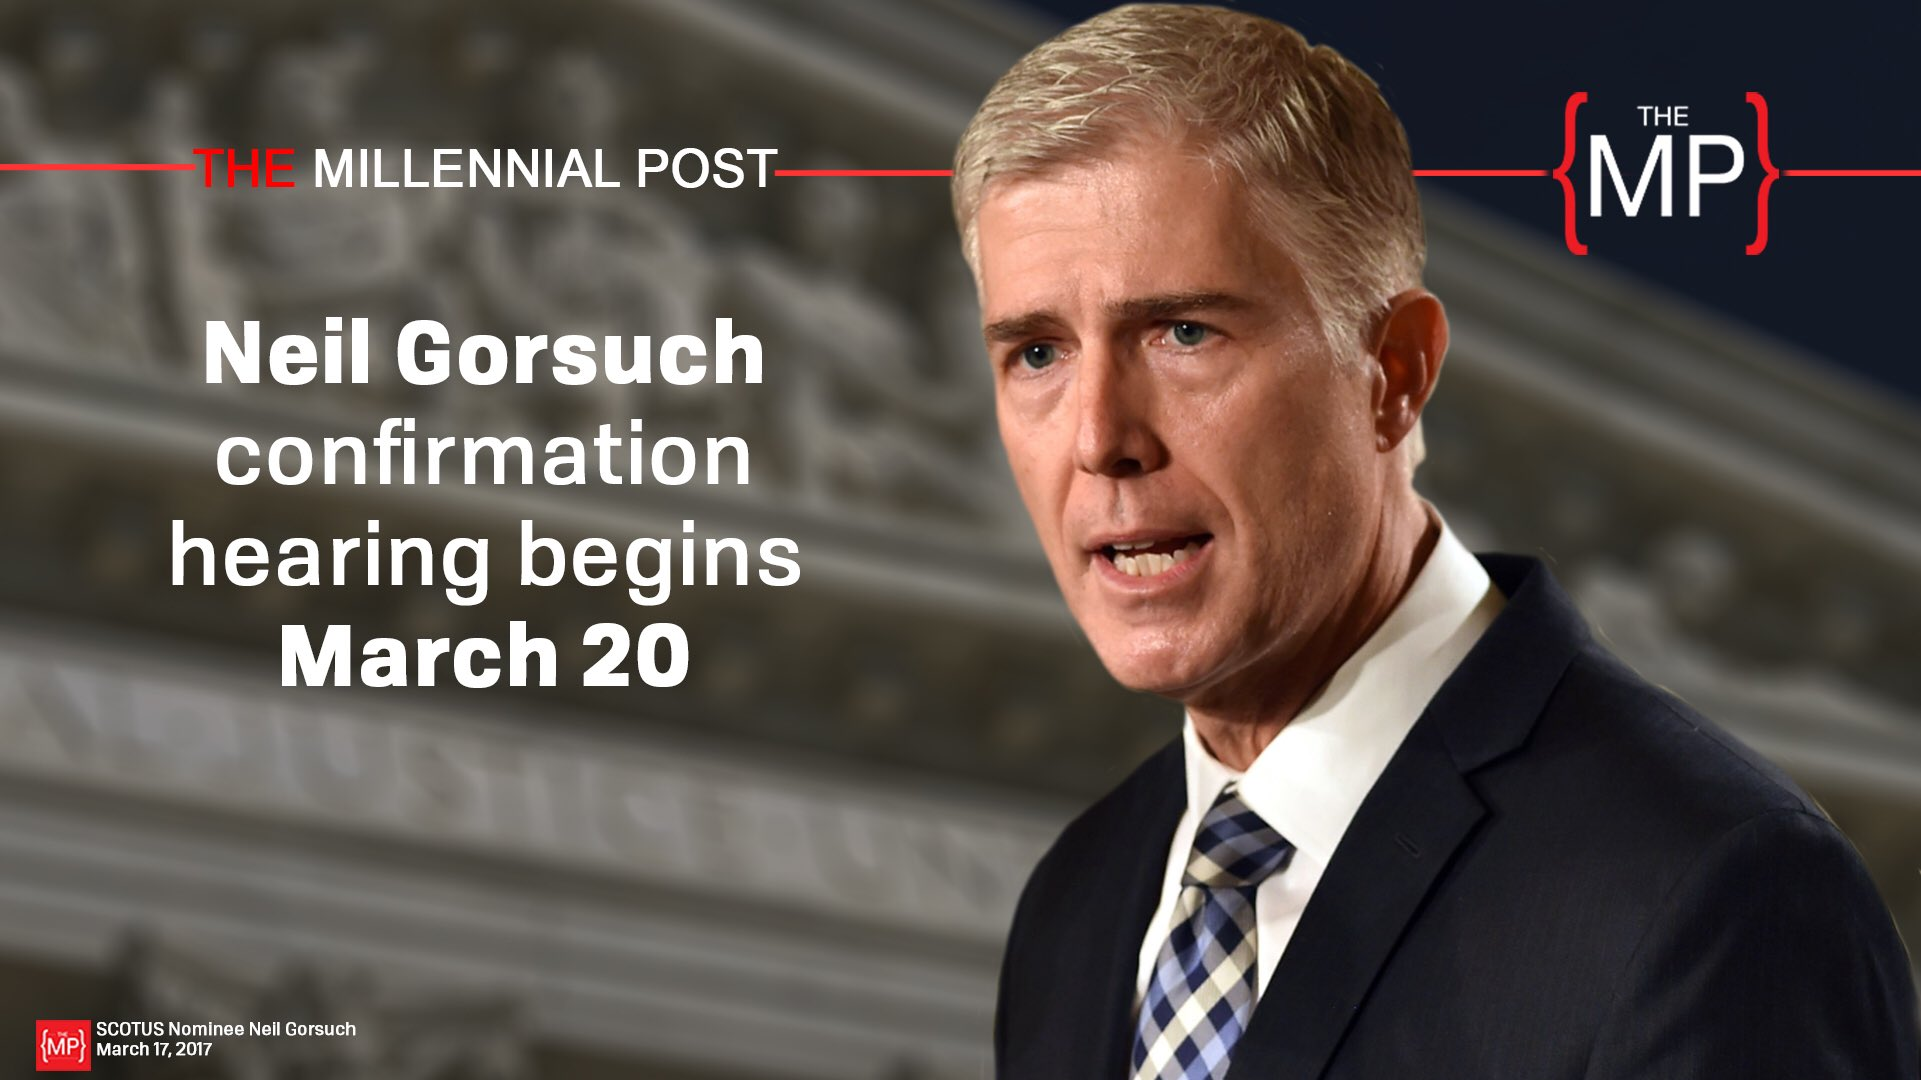 SCOTUS nominee Neil Gorsuch confirmation hearing will begin Monday, March 20th. #SCOTUS #NeilGorsuch #Gorsuch https://t.co/4wJaQO7RoB